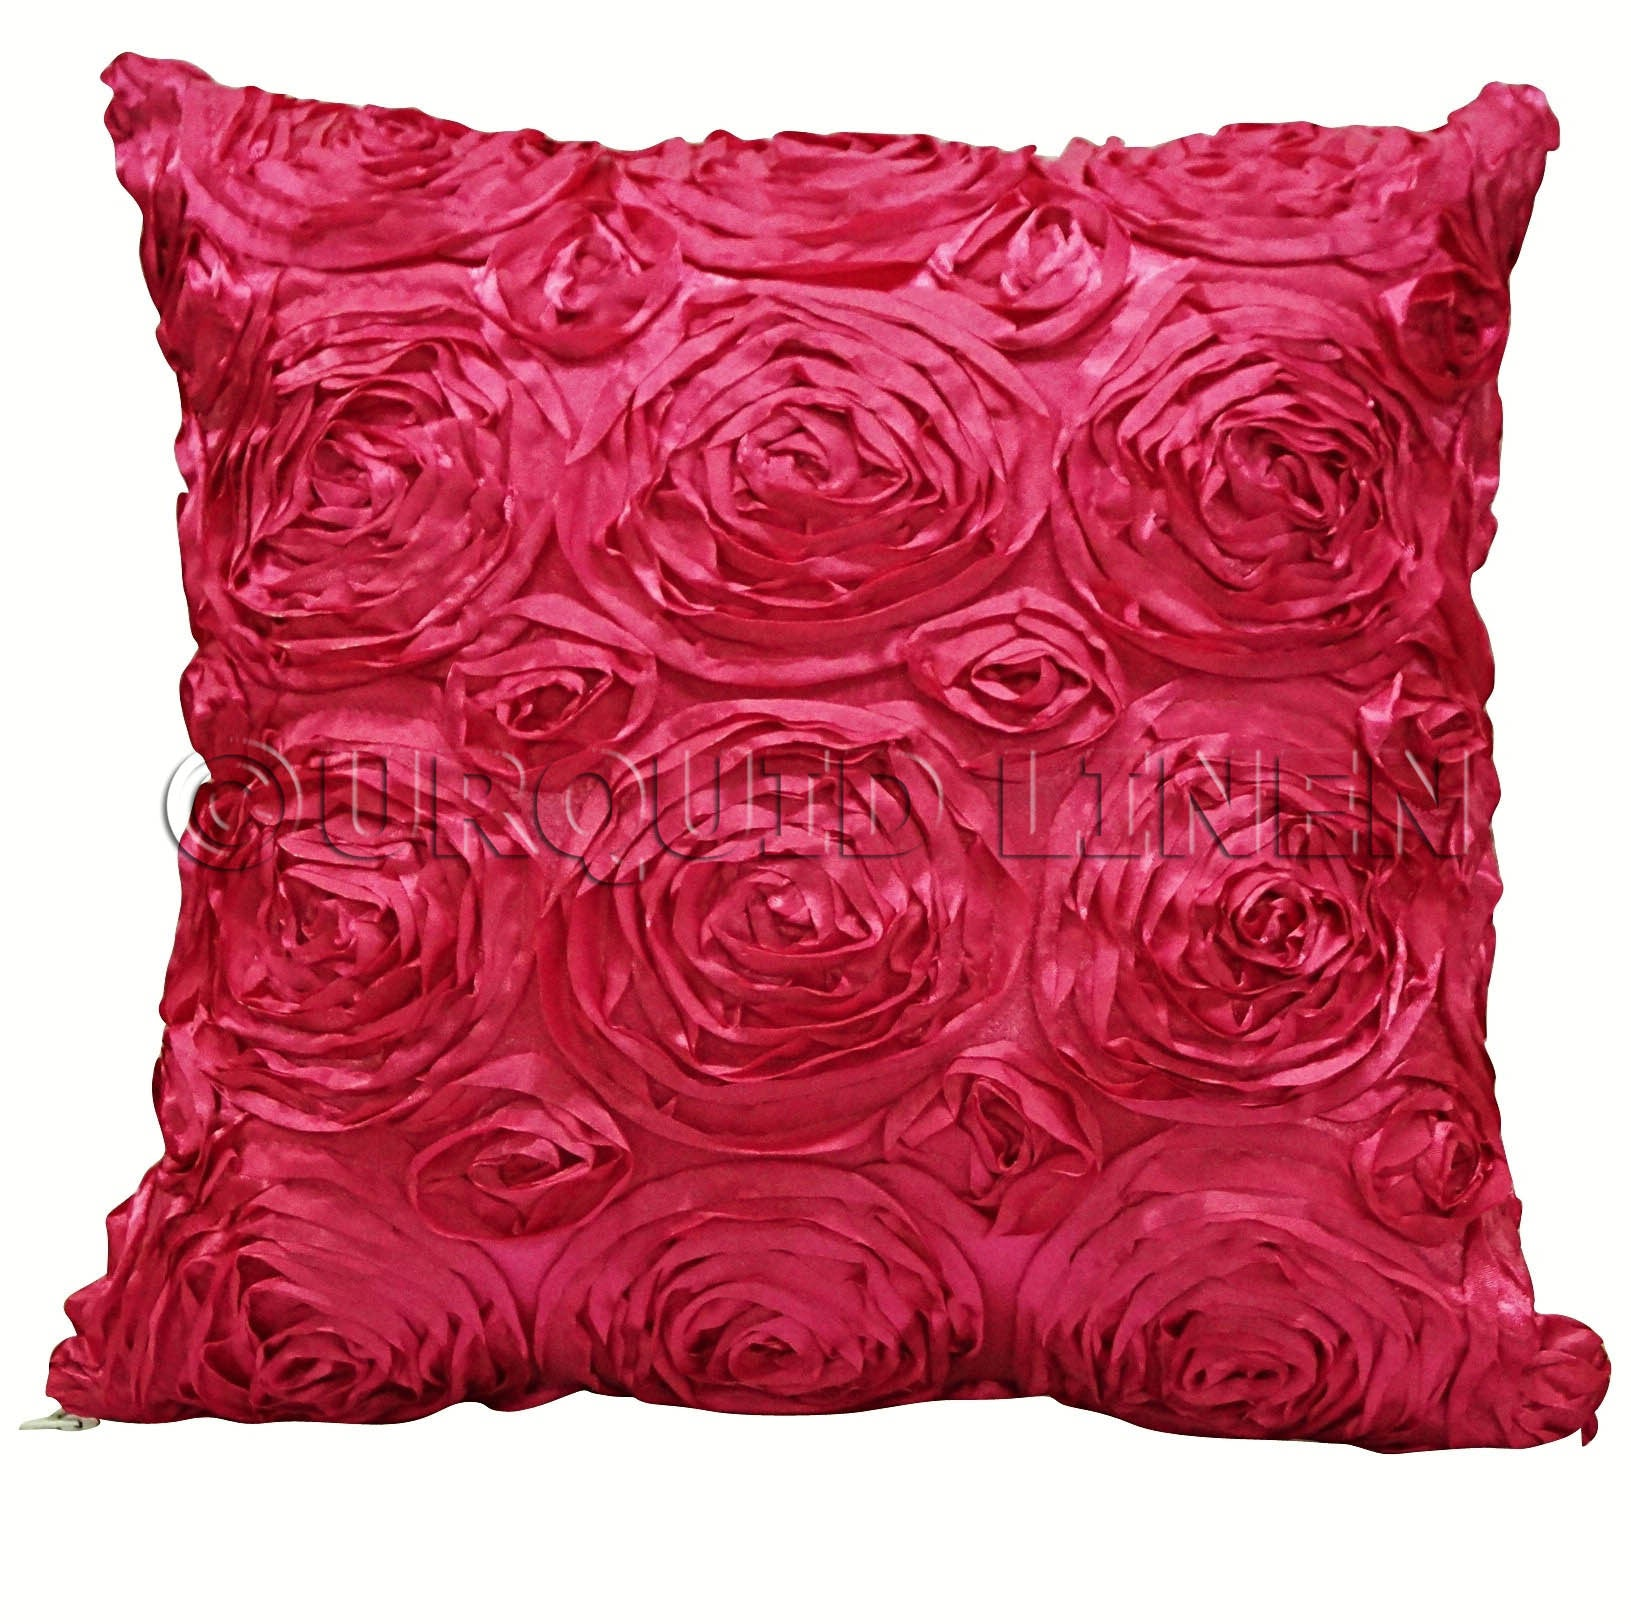 Rose Satin (3D) Throw Pillow